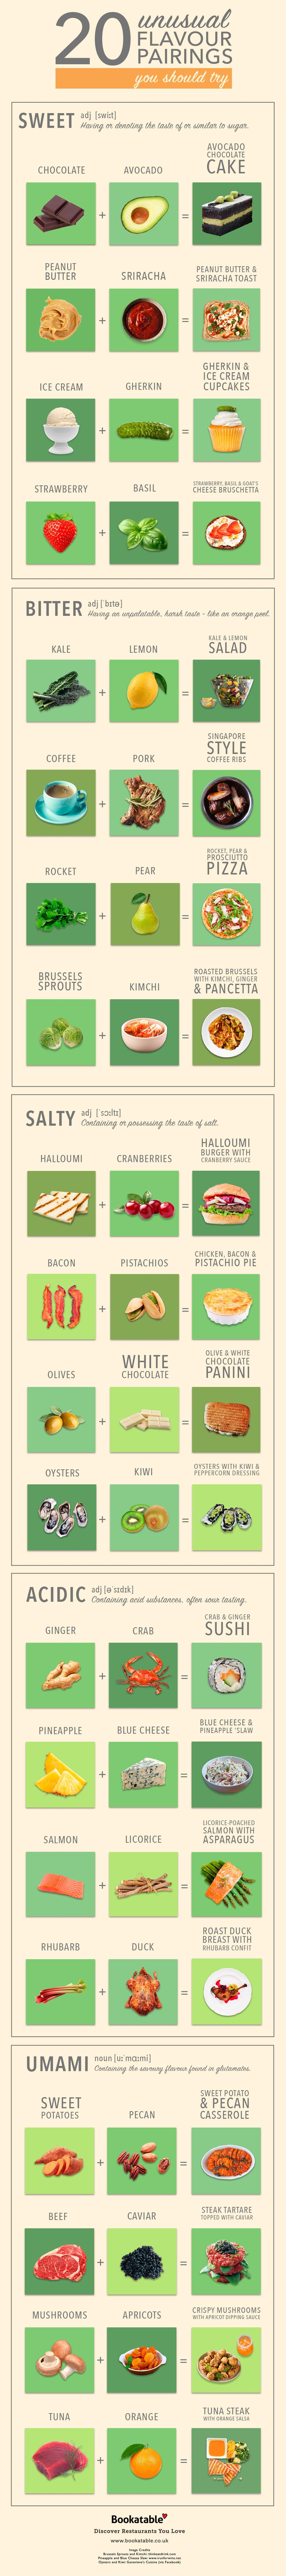 weird-food-combinations-flavour-pairings.jpg